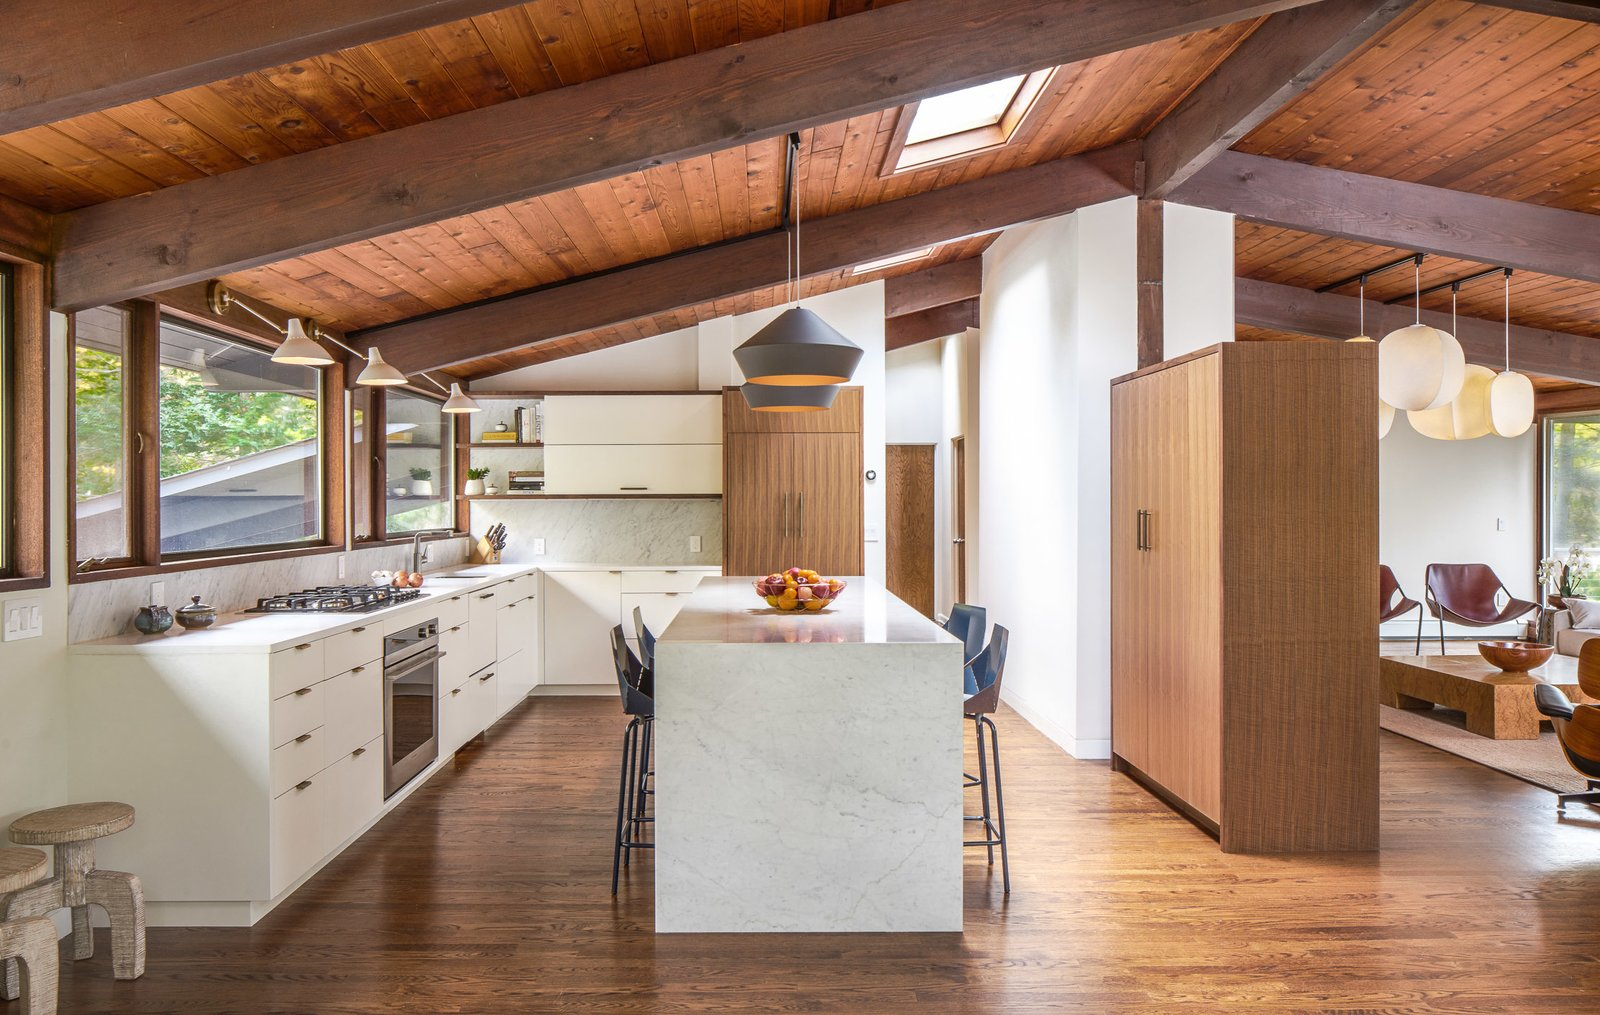 Westport Connecticut Midcentury Home kitchen